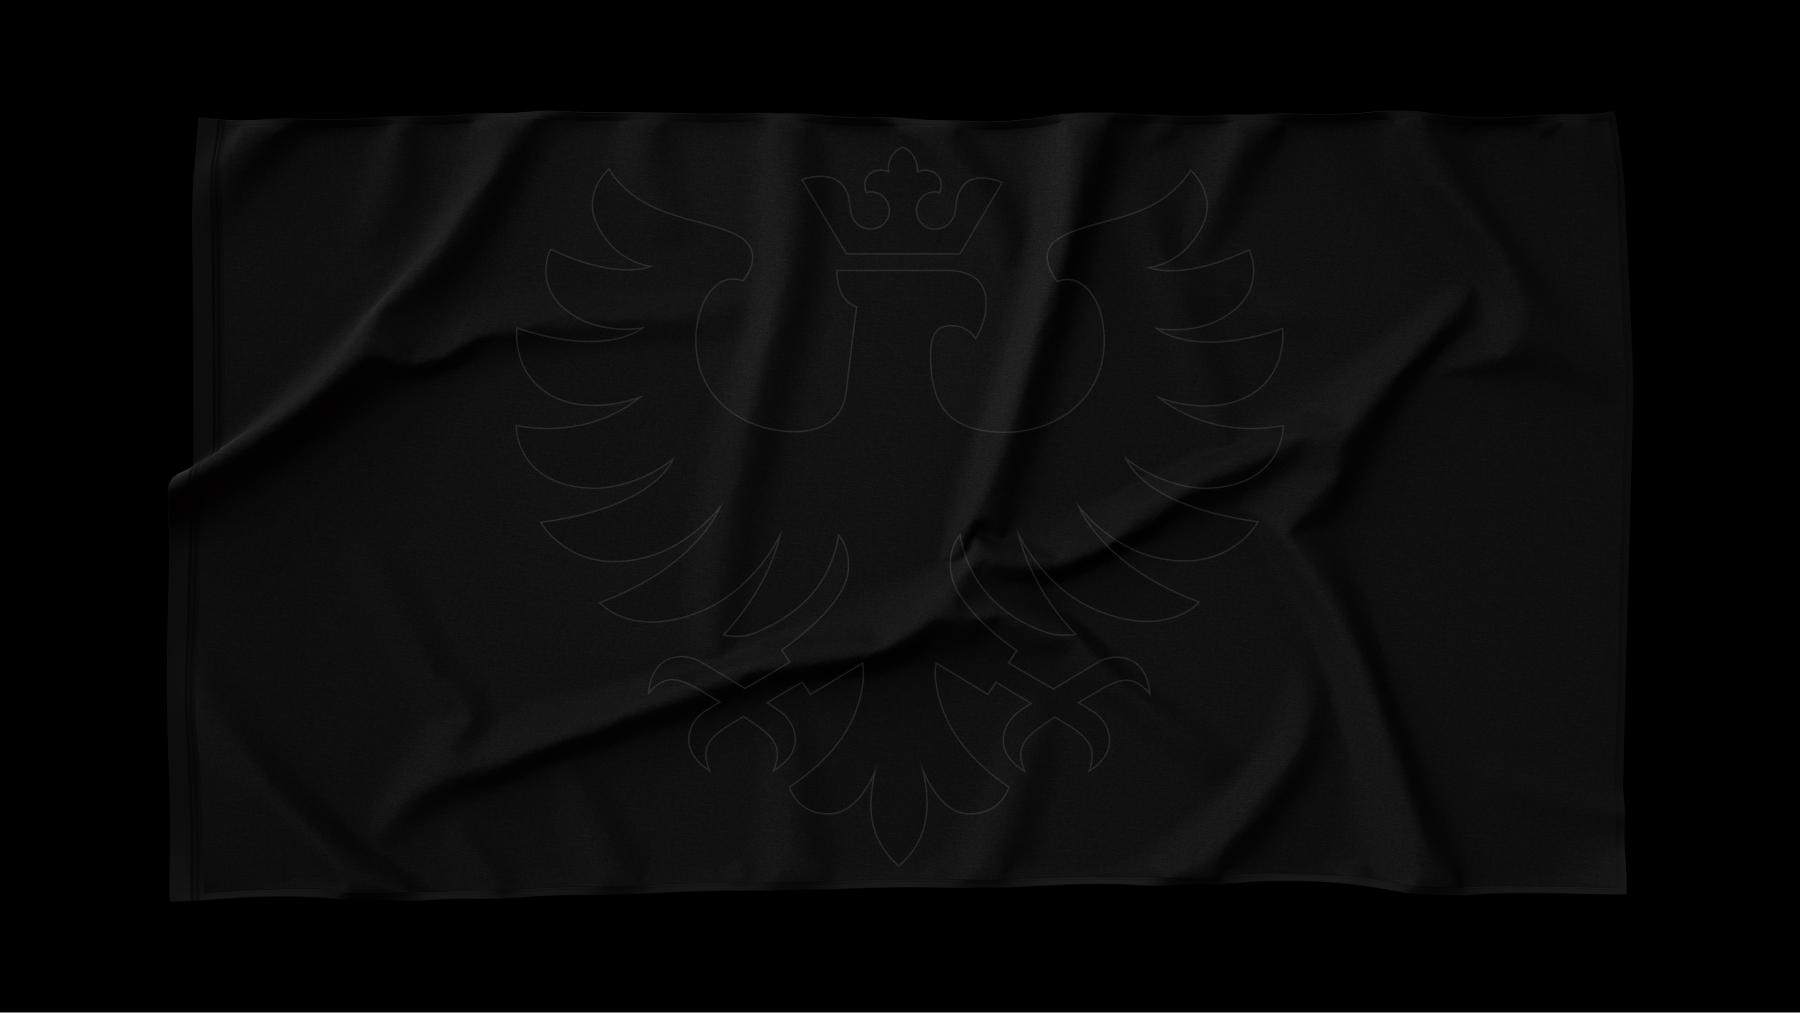 Essential-Preview-01-SupplyFlag